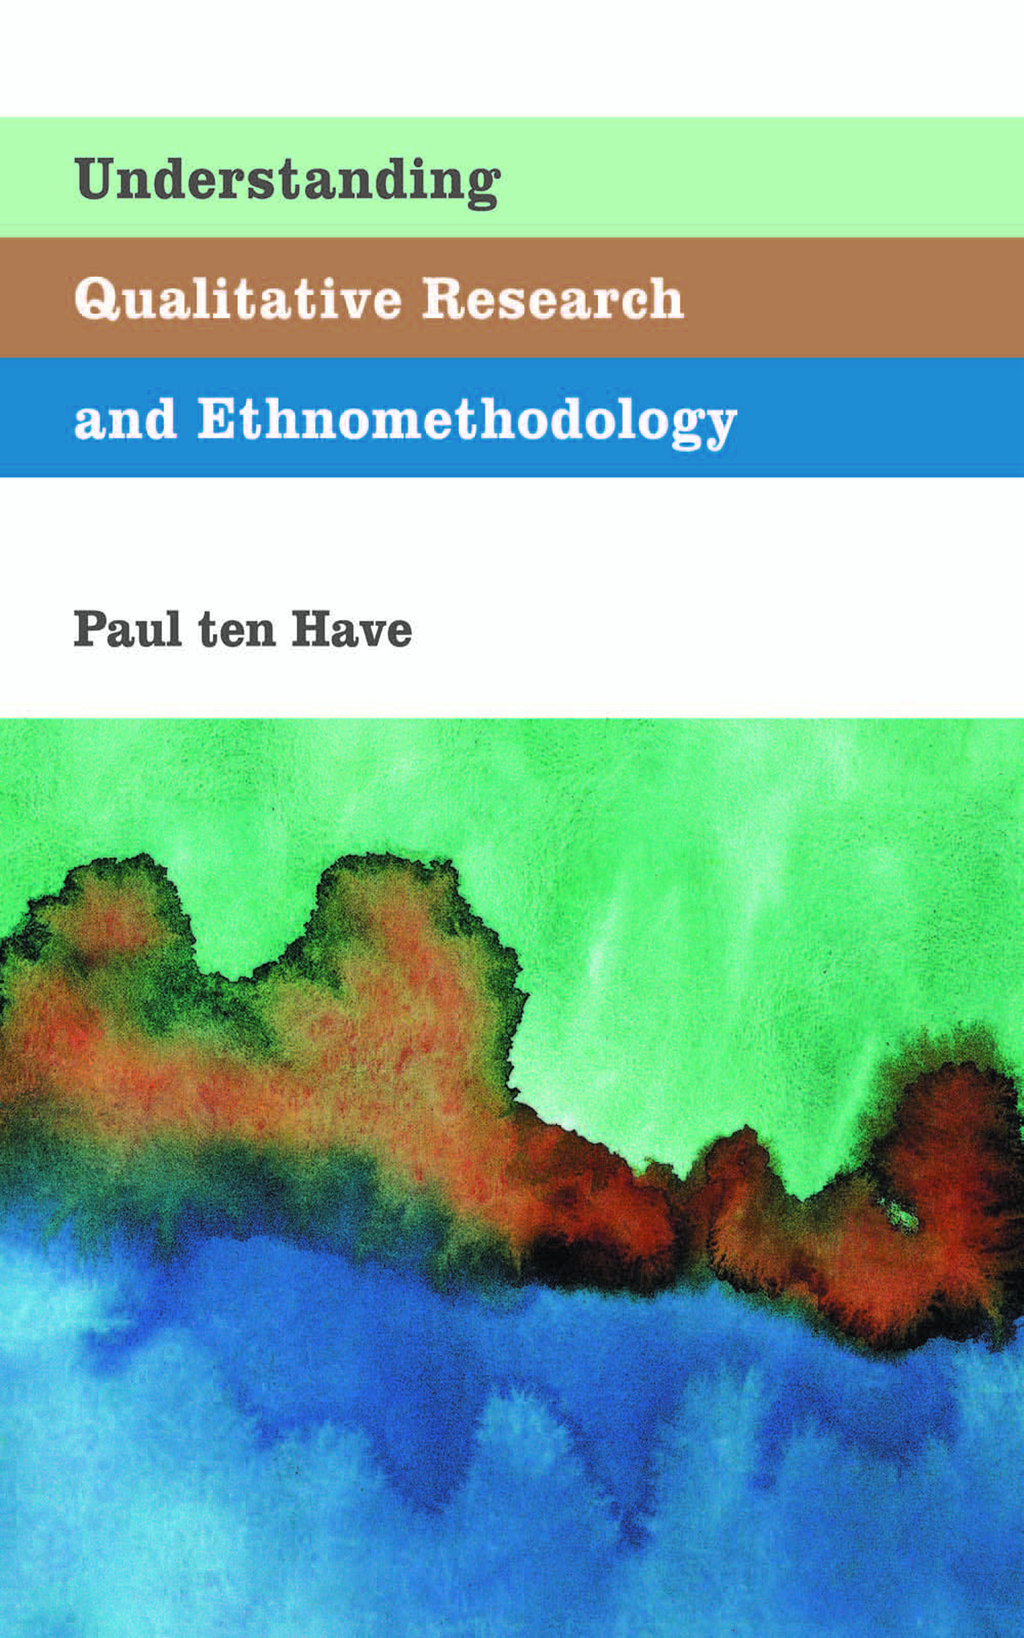 Understanding Qualitative Research and Ethnomethodology